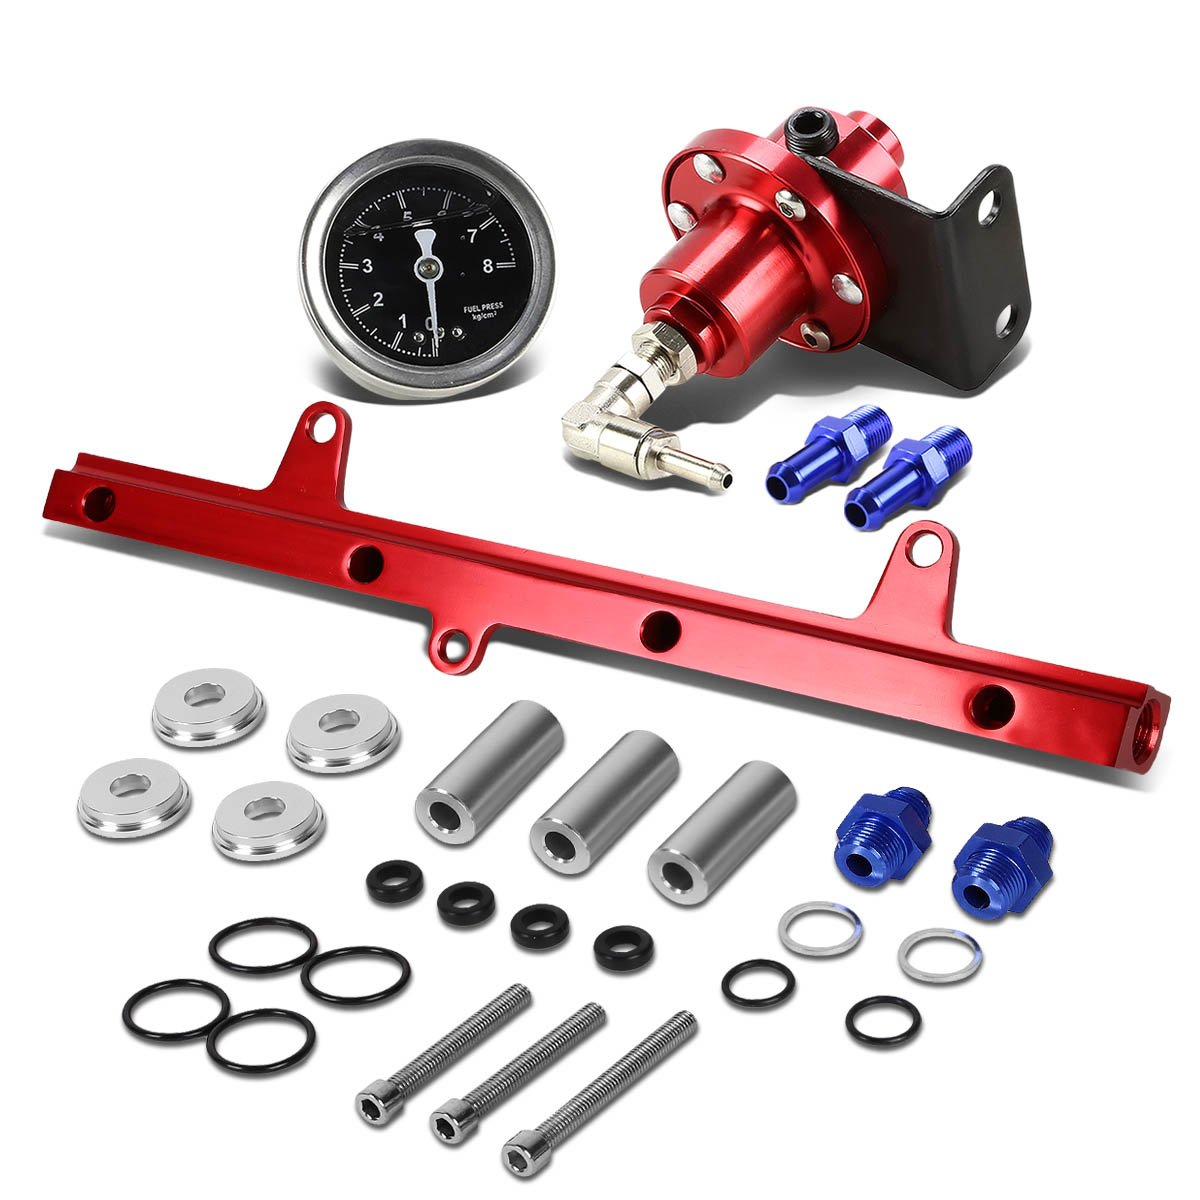 Red For Nissan S13 SR20 Swapped Top Feed Fuel Injector Rail Kit+Fuel Pressure Regulator